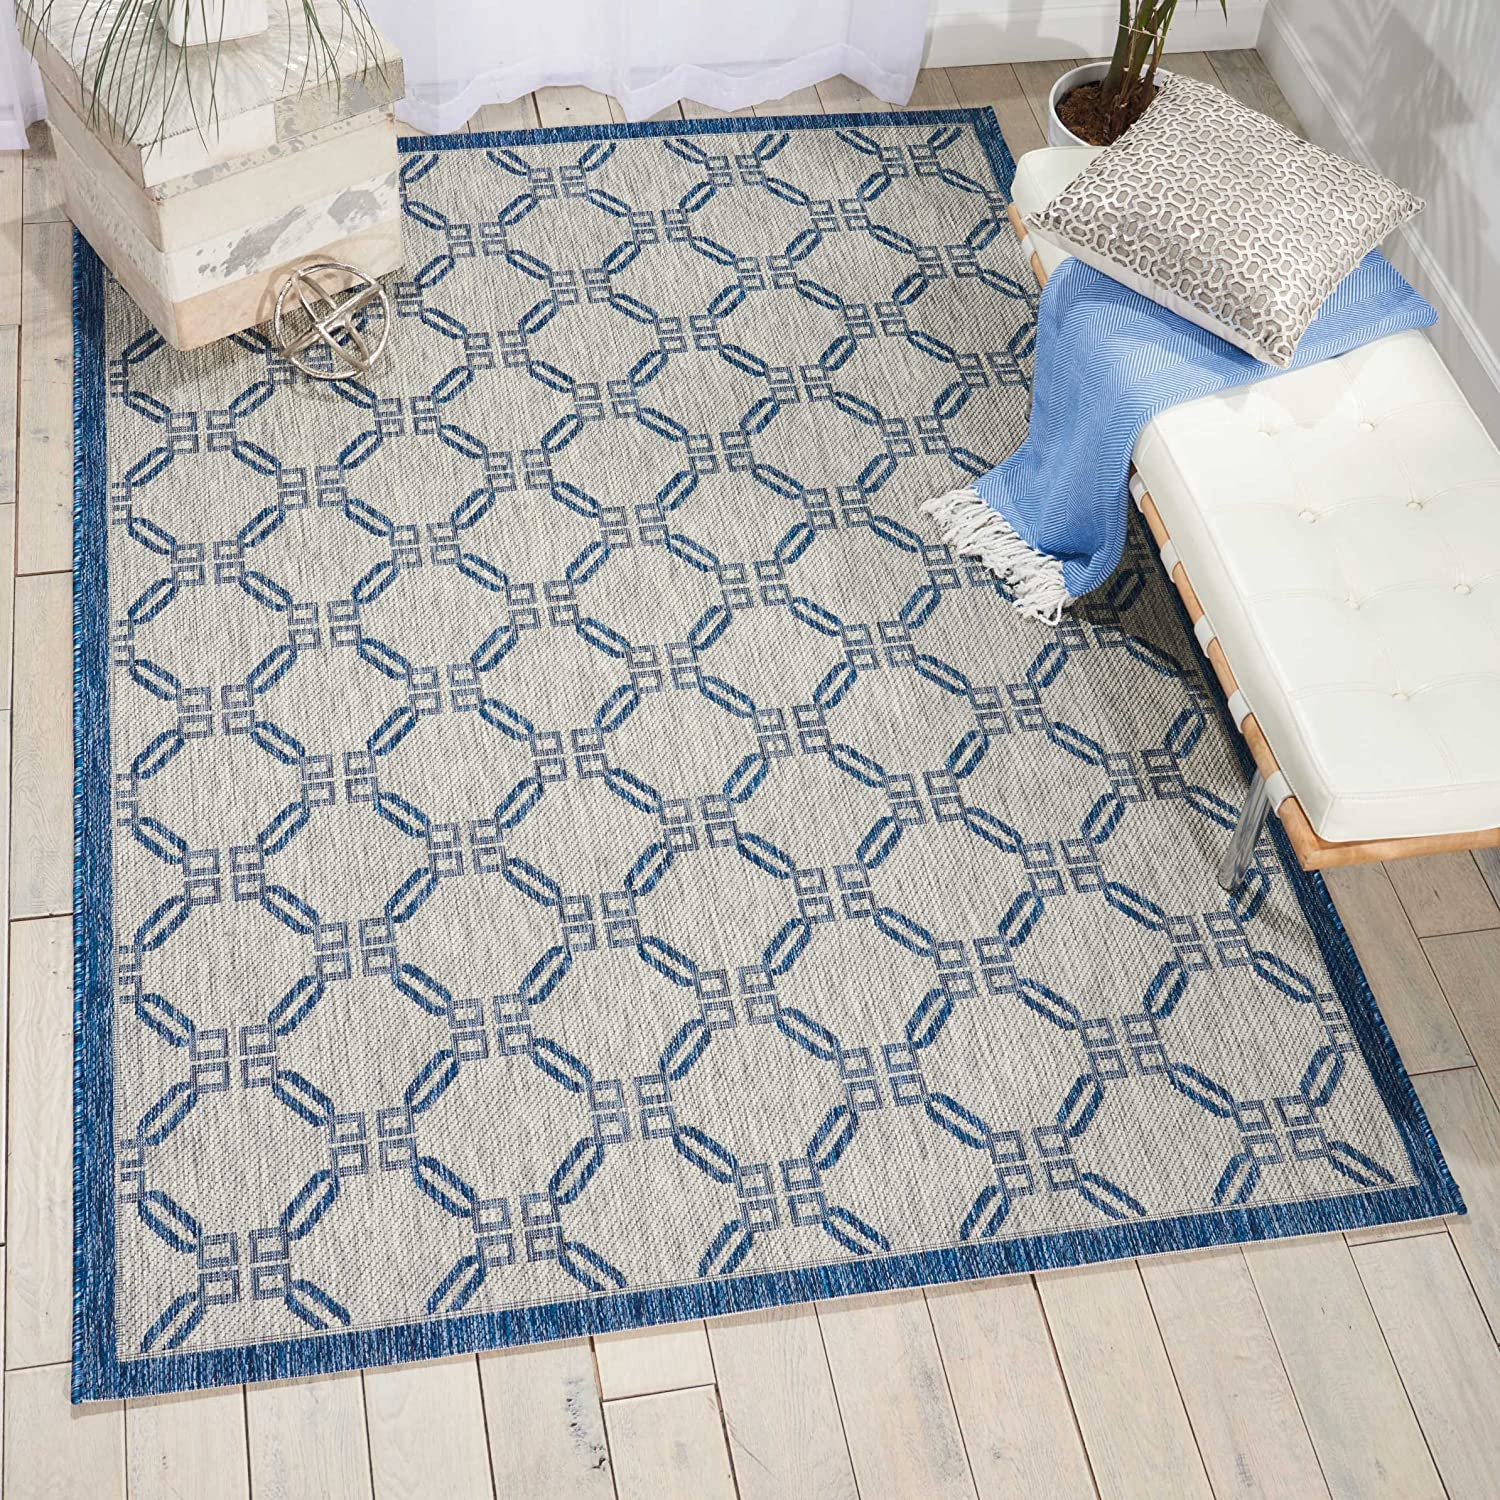 Nourison Garden Party Ivory/Blue Indoor/Outdoor Area Rug 3 Feet 6 Inches by 5 Feet 6 Inches, 3'6